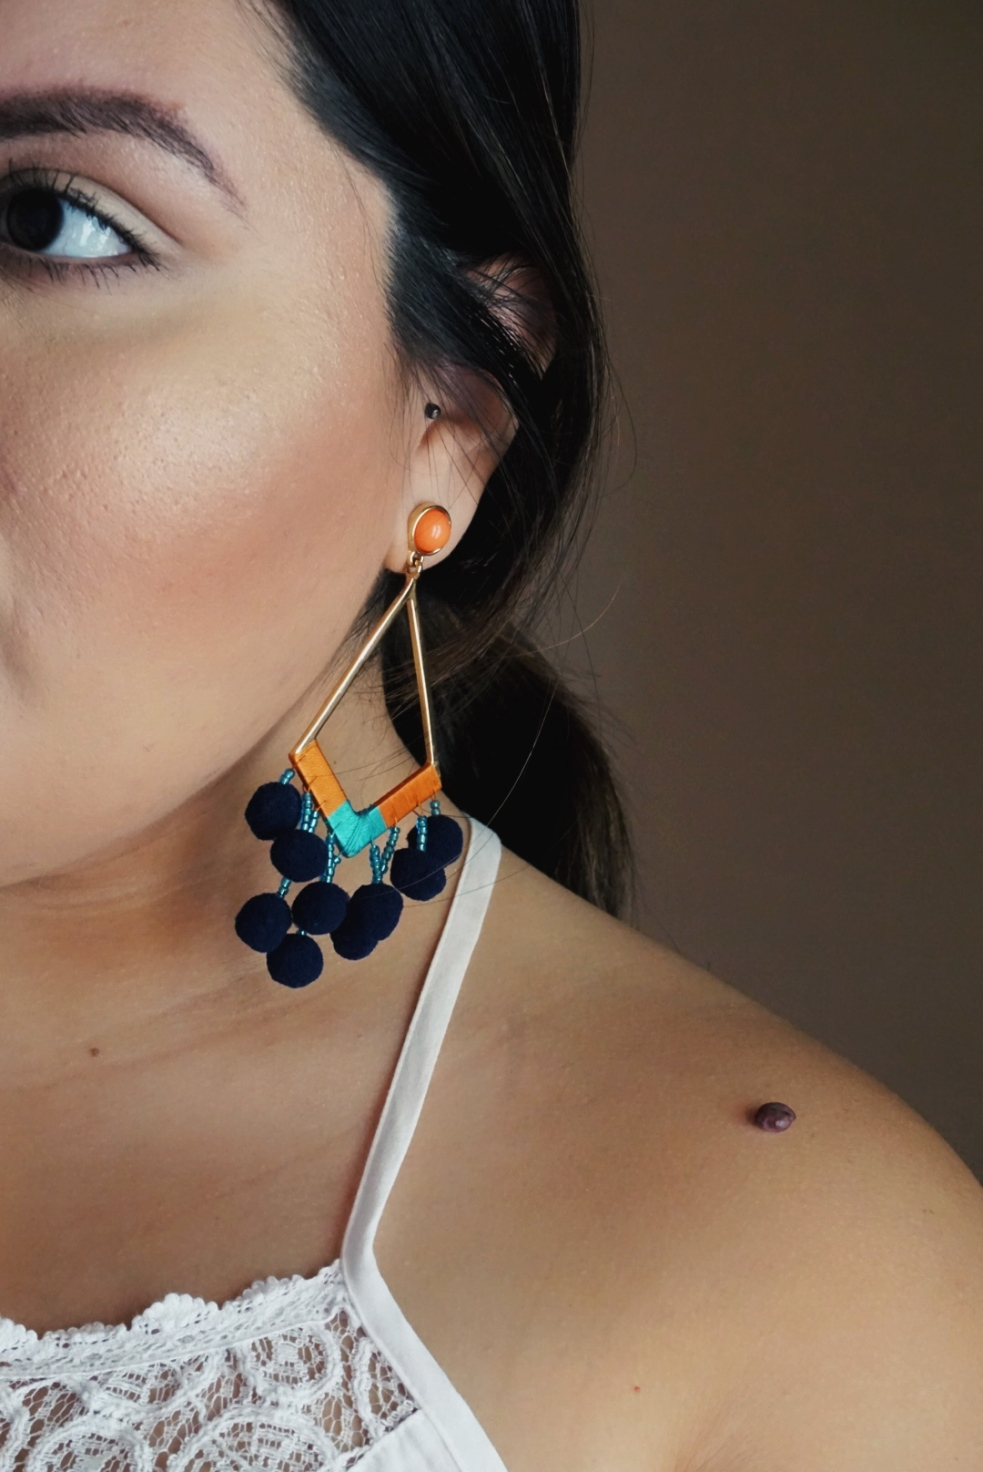 Styling Statement Pom Pom Earrings for Spring